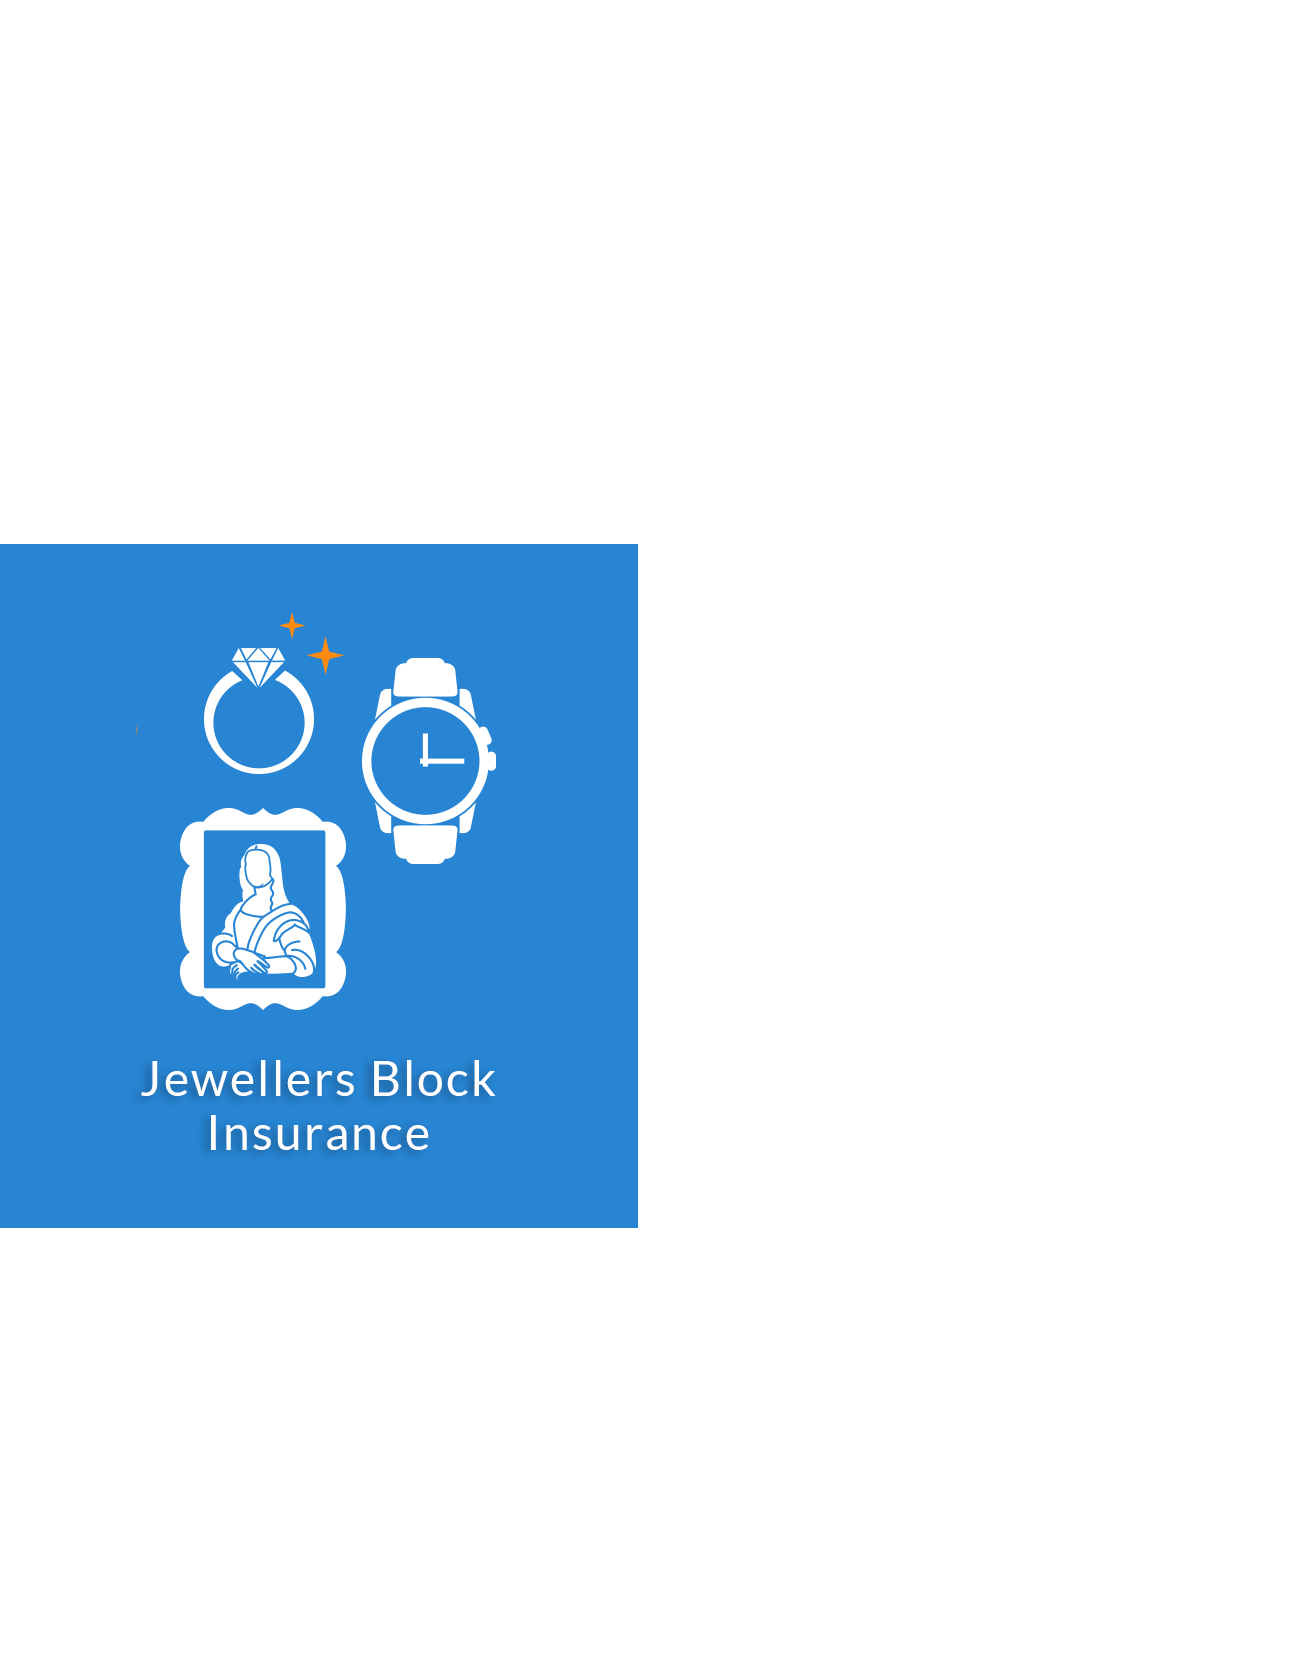 From jewelers block insurance to classic car insurance with Schwardt Insurance Broker